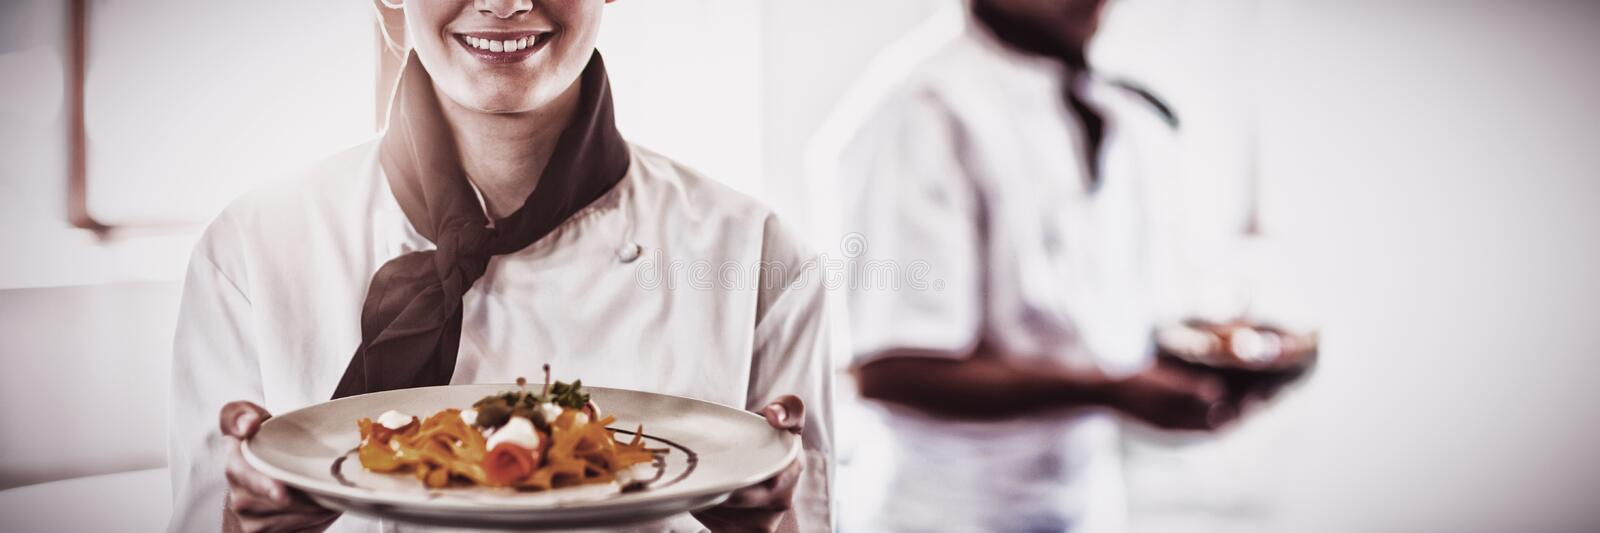 Happy head chef presenting her food royalty free stock photography